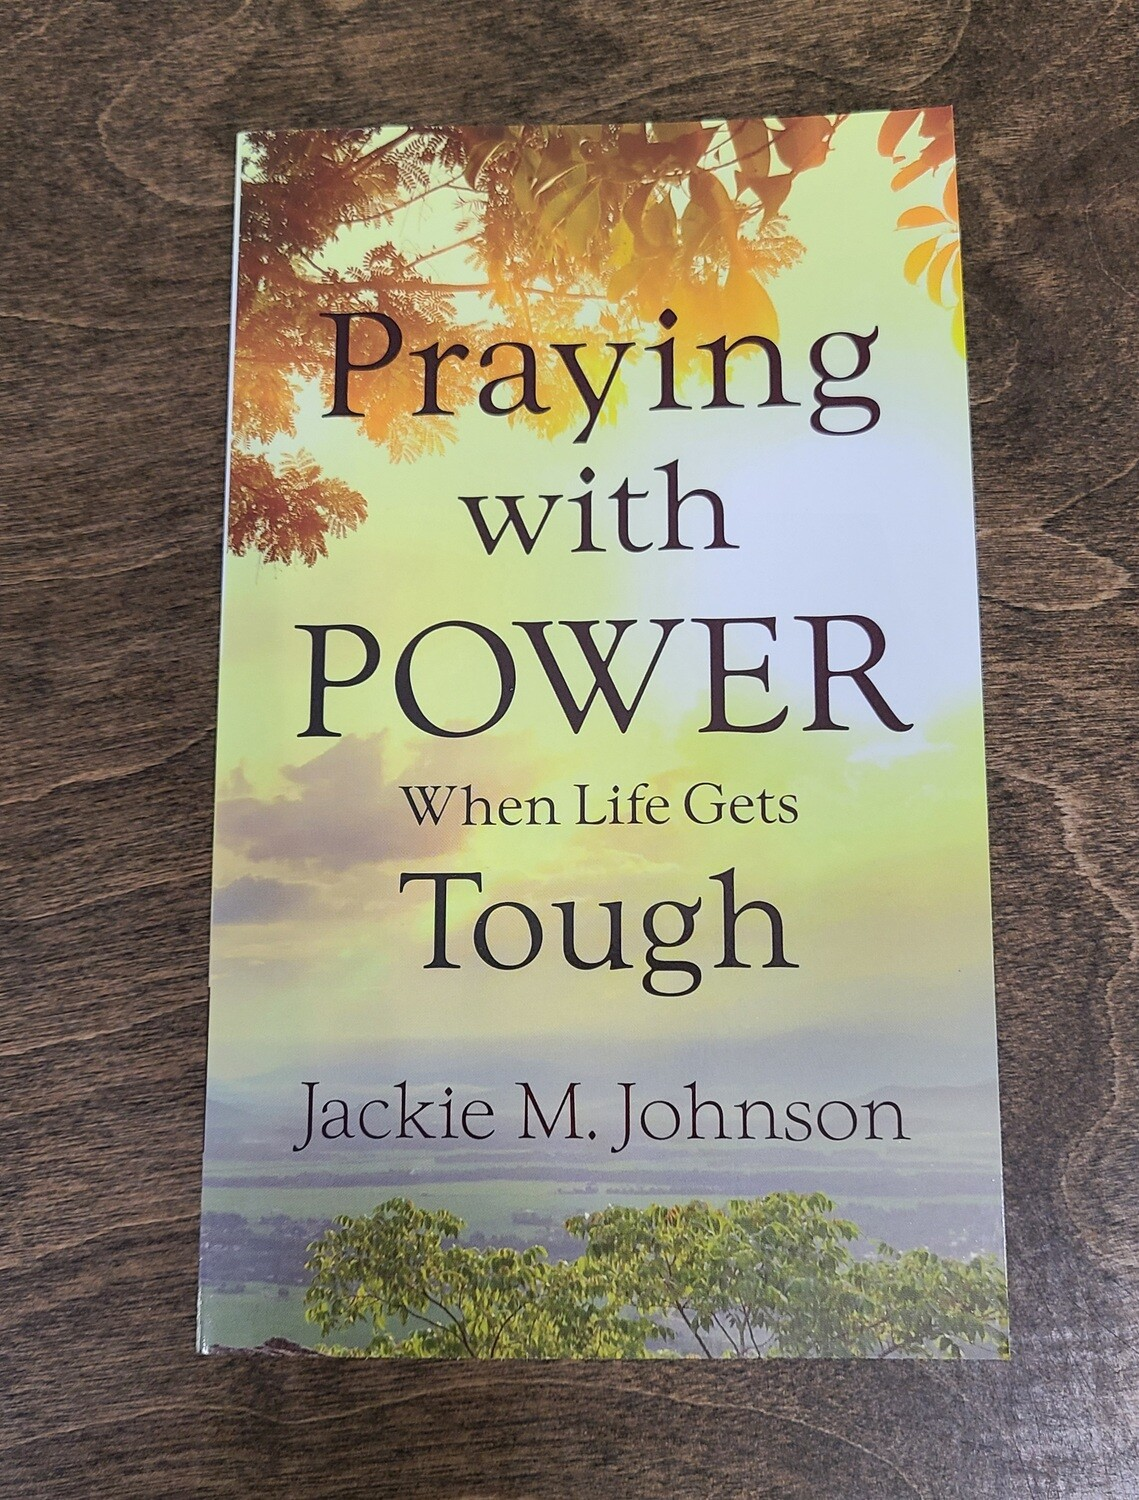 Praying with Power: When Life Gets Tough by Jackie M. Johnson